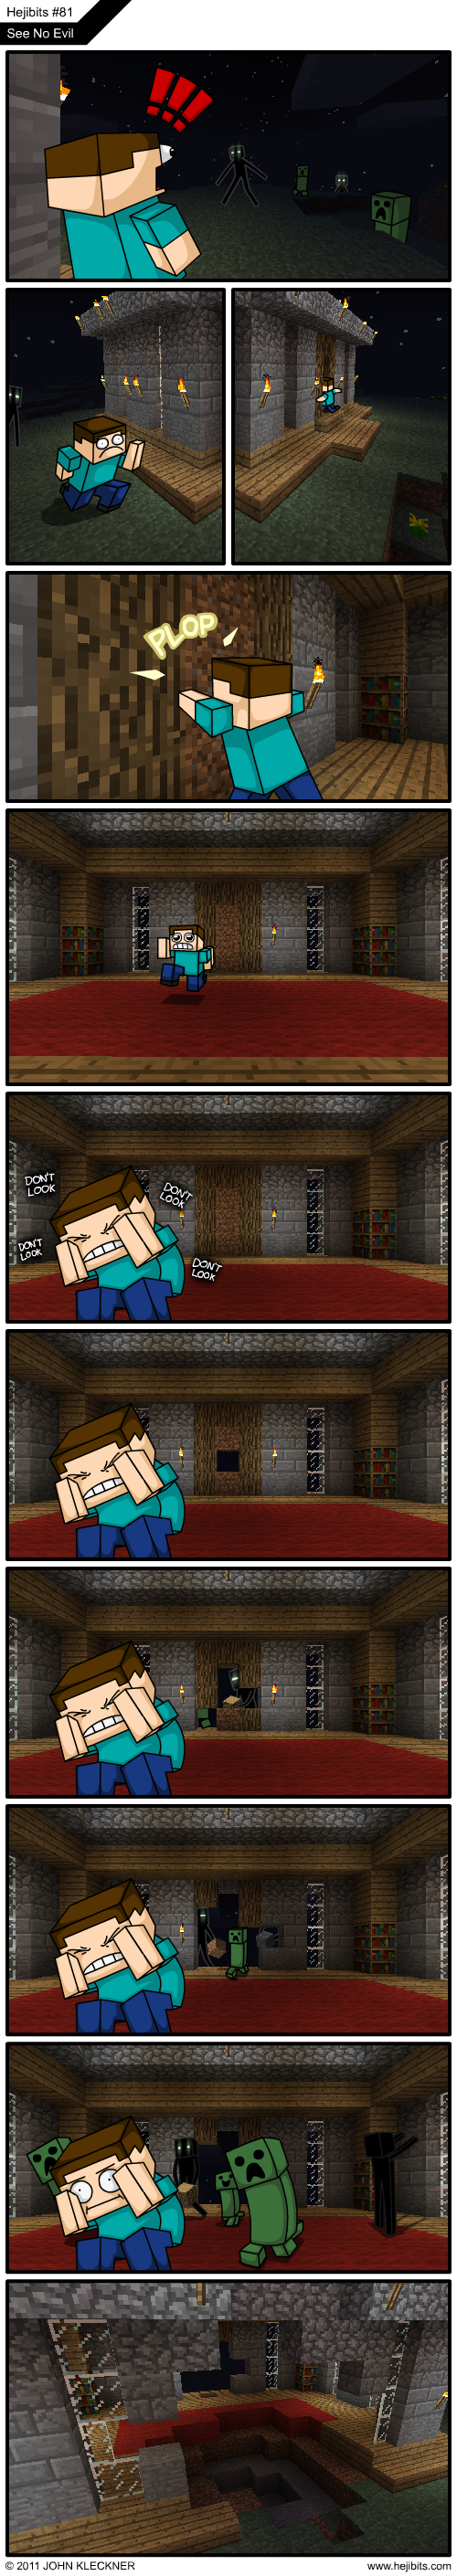 2011 09 26 see no evil minecraft comics minecraft Humor Gaming